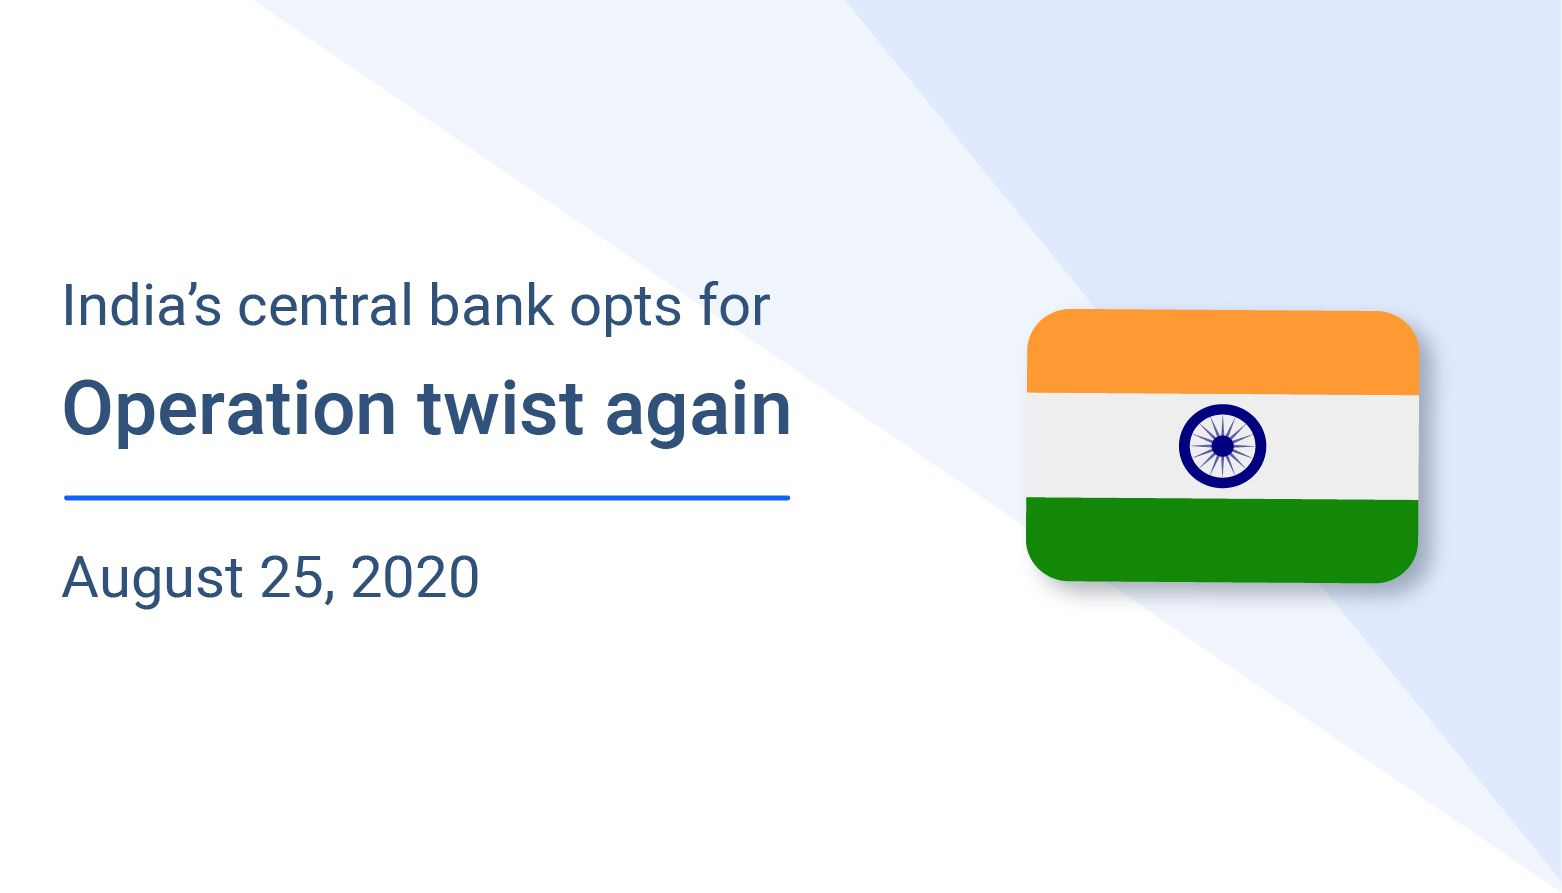 India's central bank opts for operation twist again